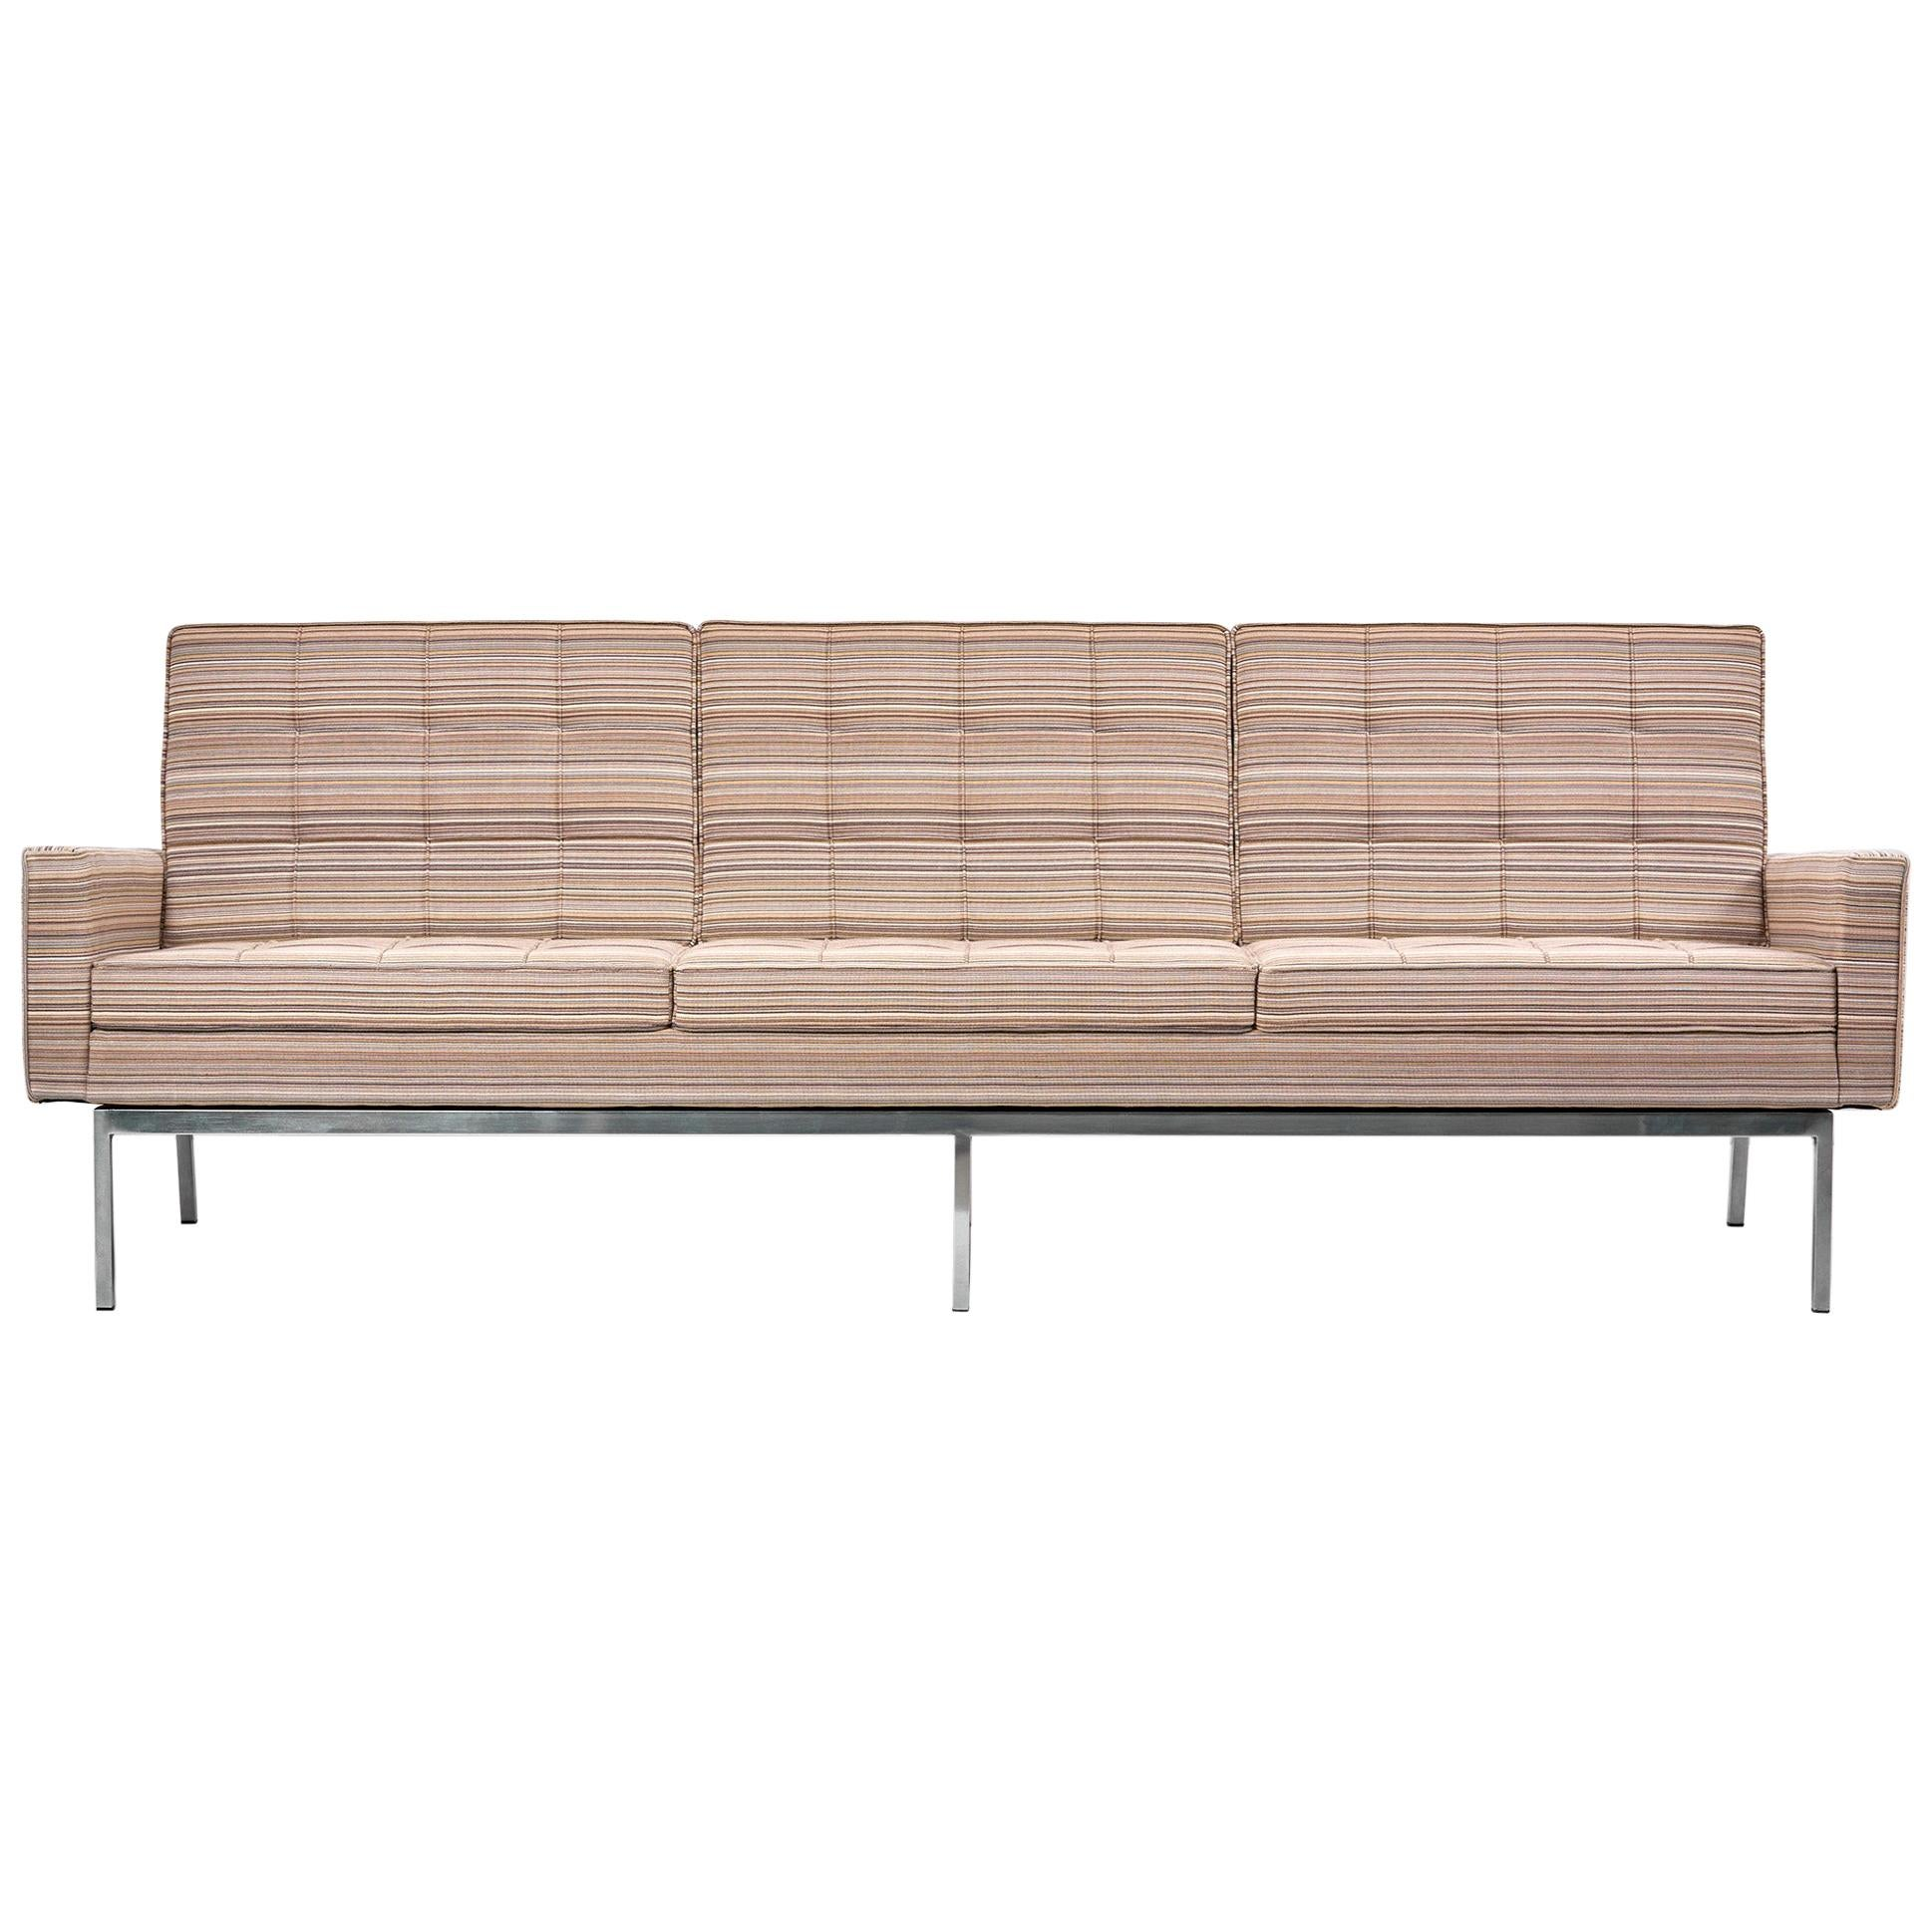 67A Sofa by Florence Knoll for Knoll International